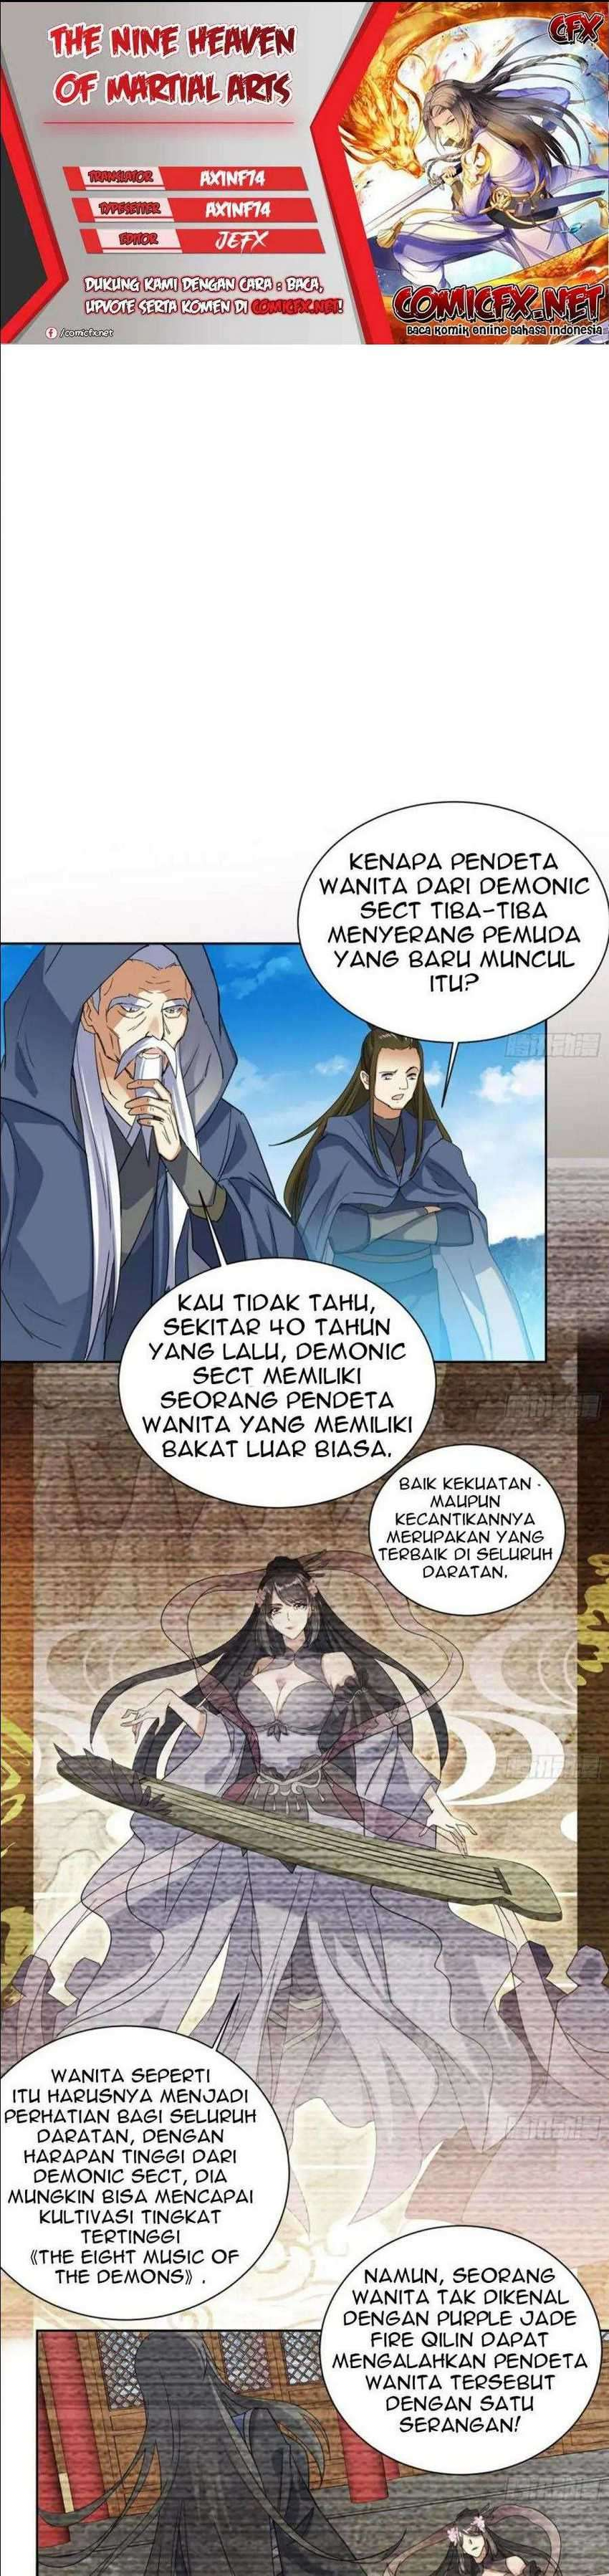 The Nine Heaven Of Martial Arts Chapter 186